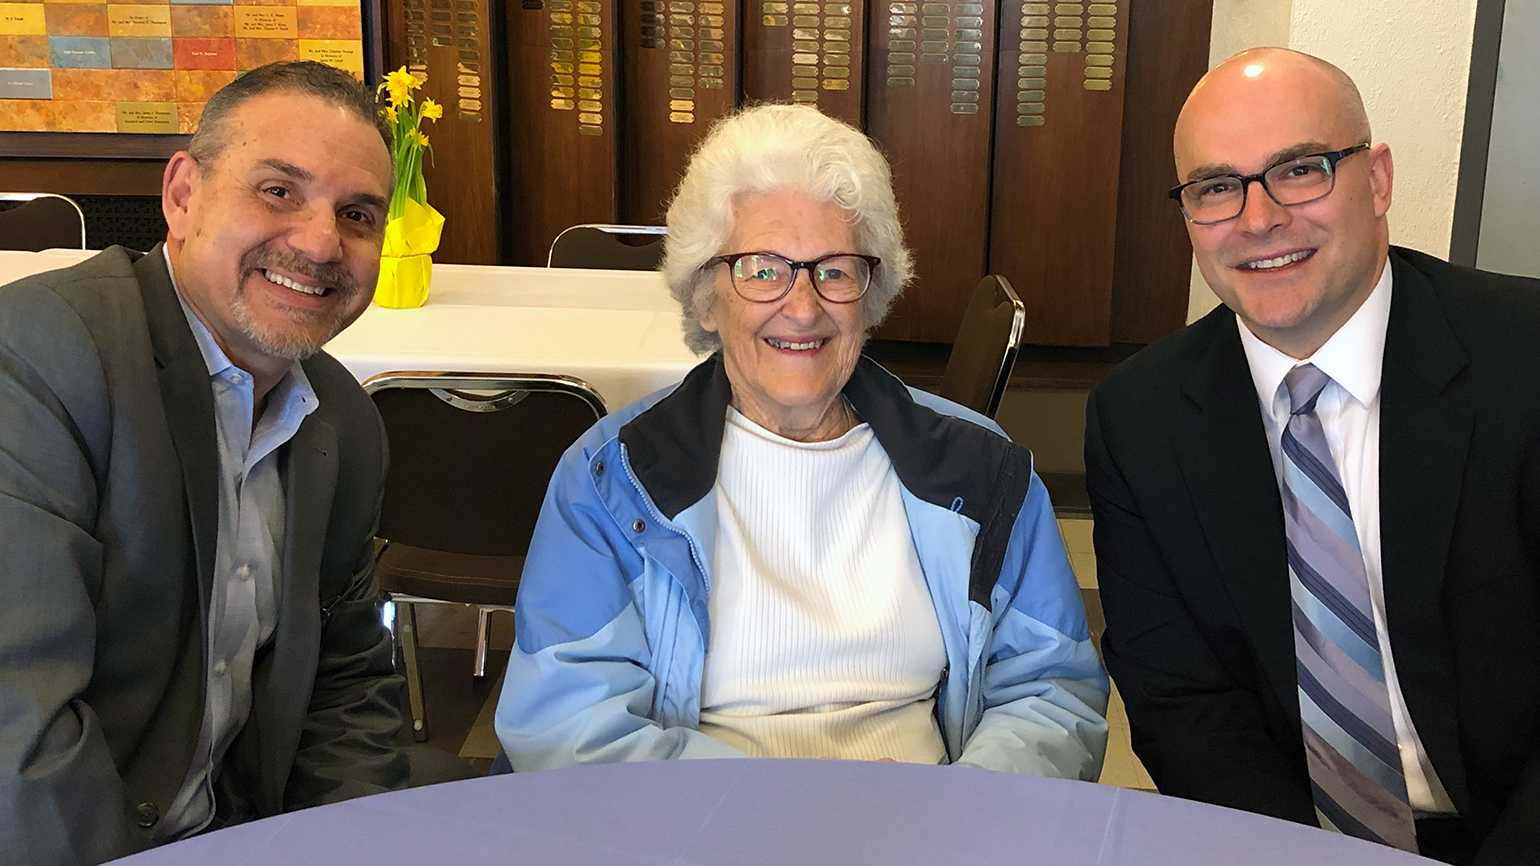 Pablo R. Diaz (left), Vice President of Ministries and Guideposts President & CEO John Temple spend time with an attendee at Good Friday Day of Prayer